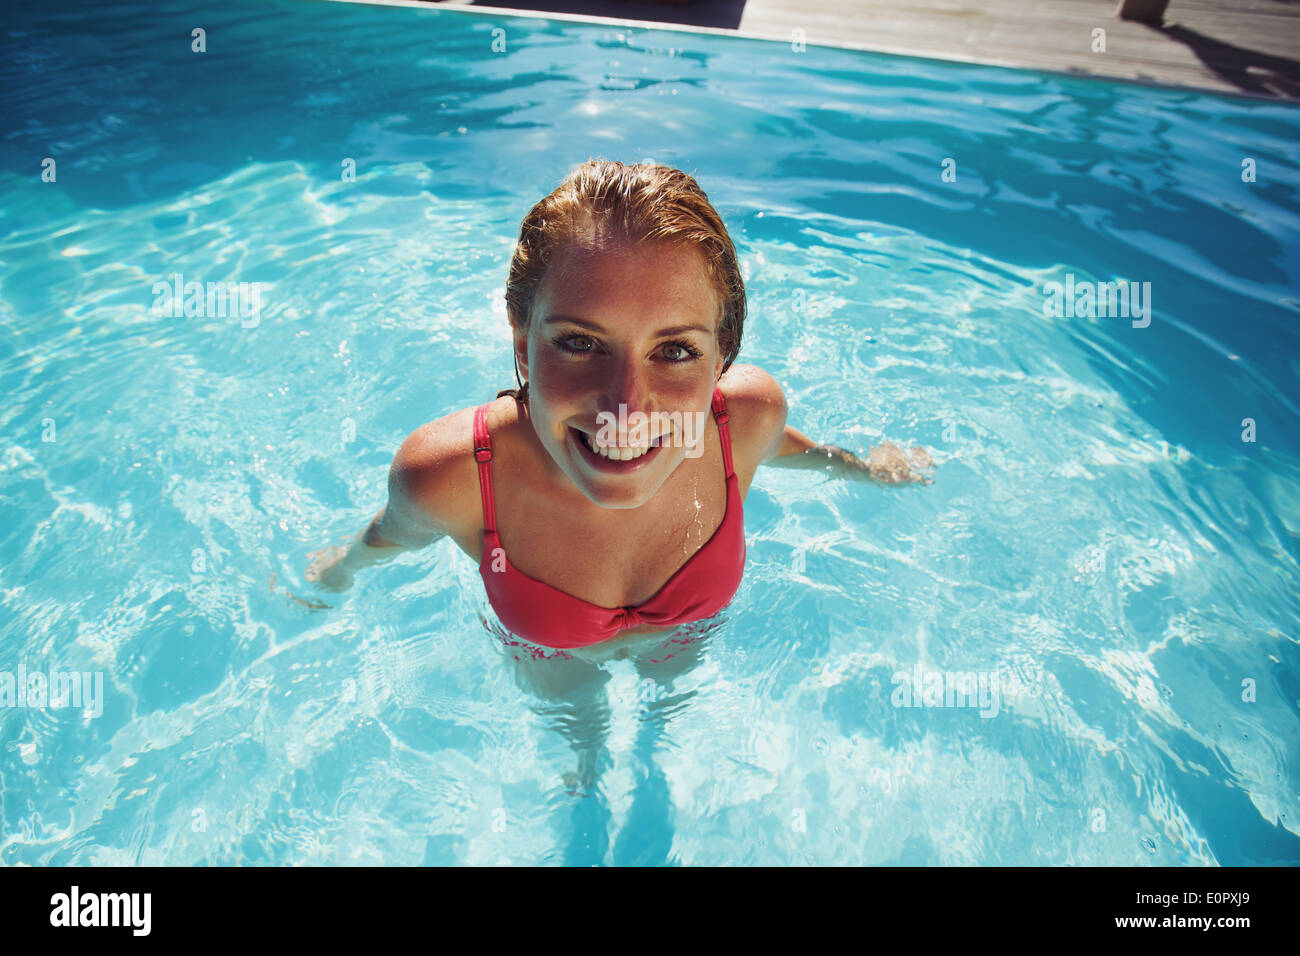 Overhead view of beautiful young lady wearing red swimwear standing in a pool looking at camera. Pretty young woman relaxing - Stock Image